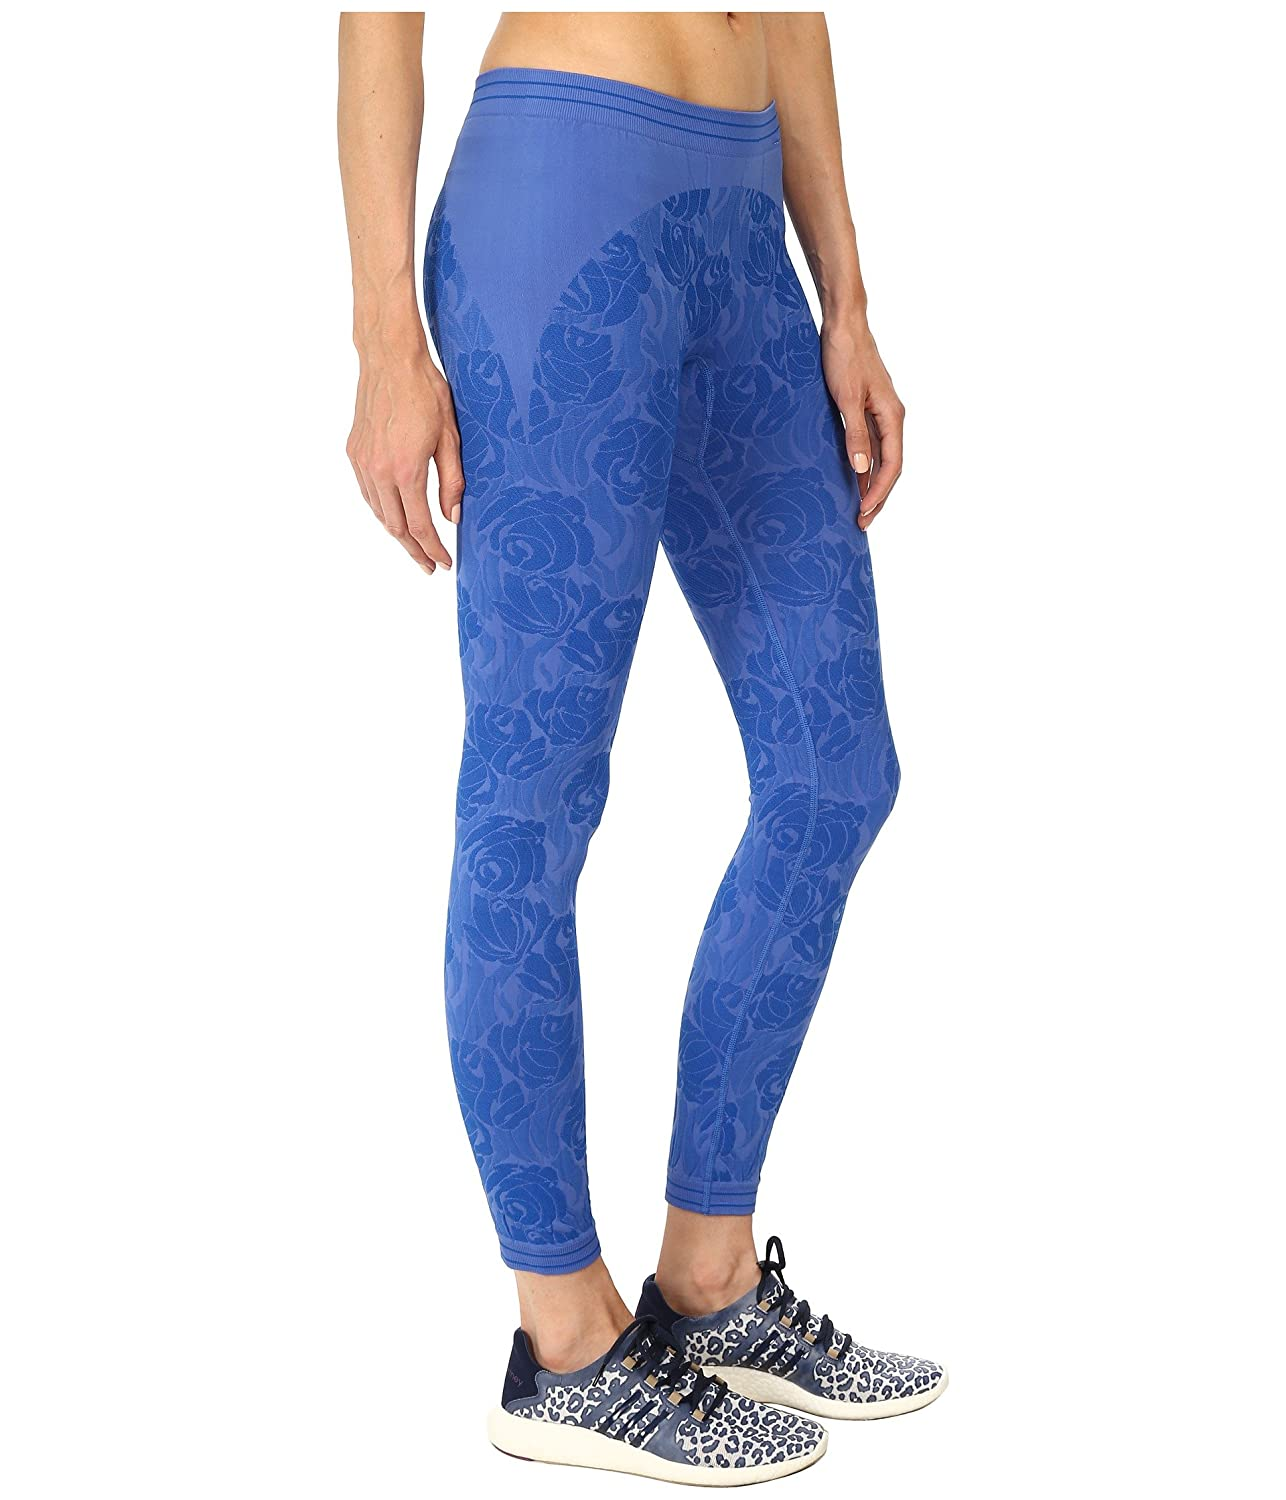 separation shoes ff041 e6808 Adidas Stella McCartney Seamless Tights - S07345 - Blue - L  Amazon.co.uk   Sports   Outdoors